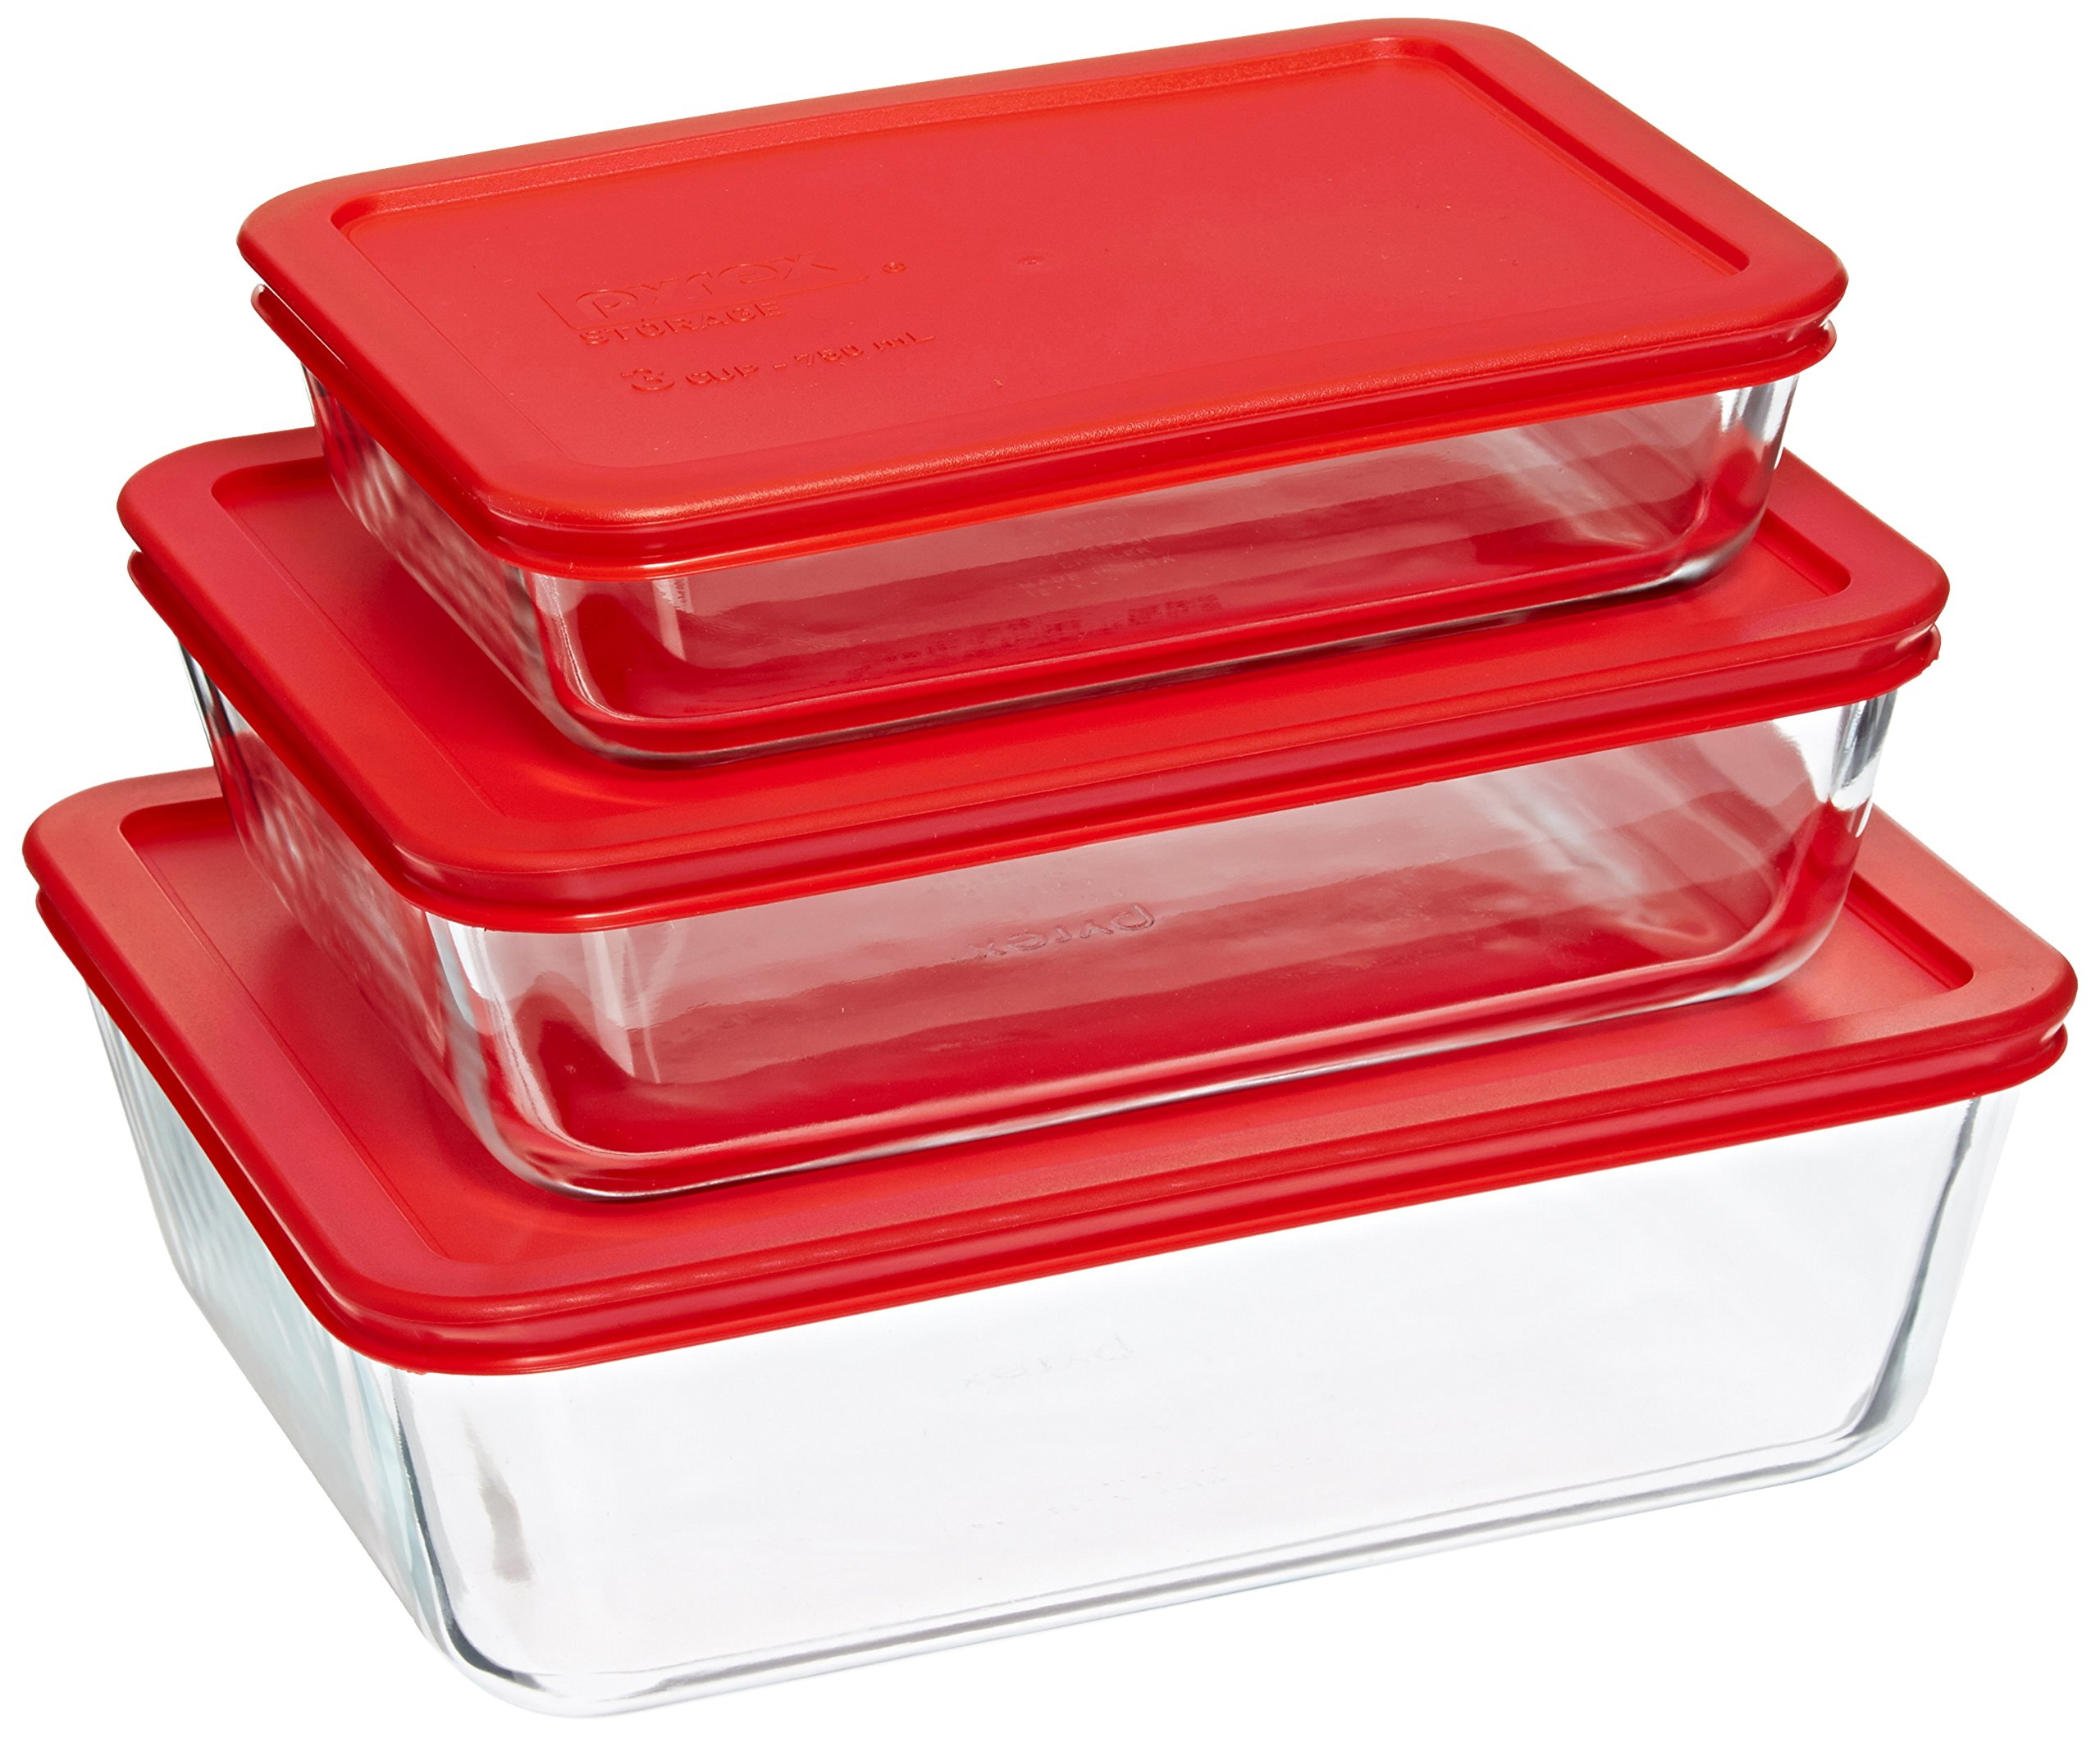 Pyrex Simply Store Glass Rectangular Food Container Set with Red Lids (6-Piece) by Pyrex